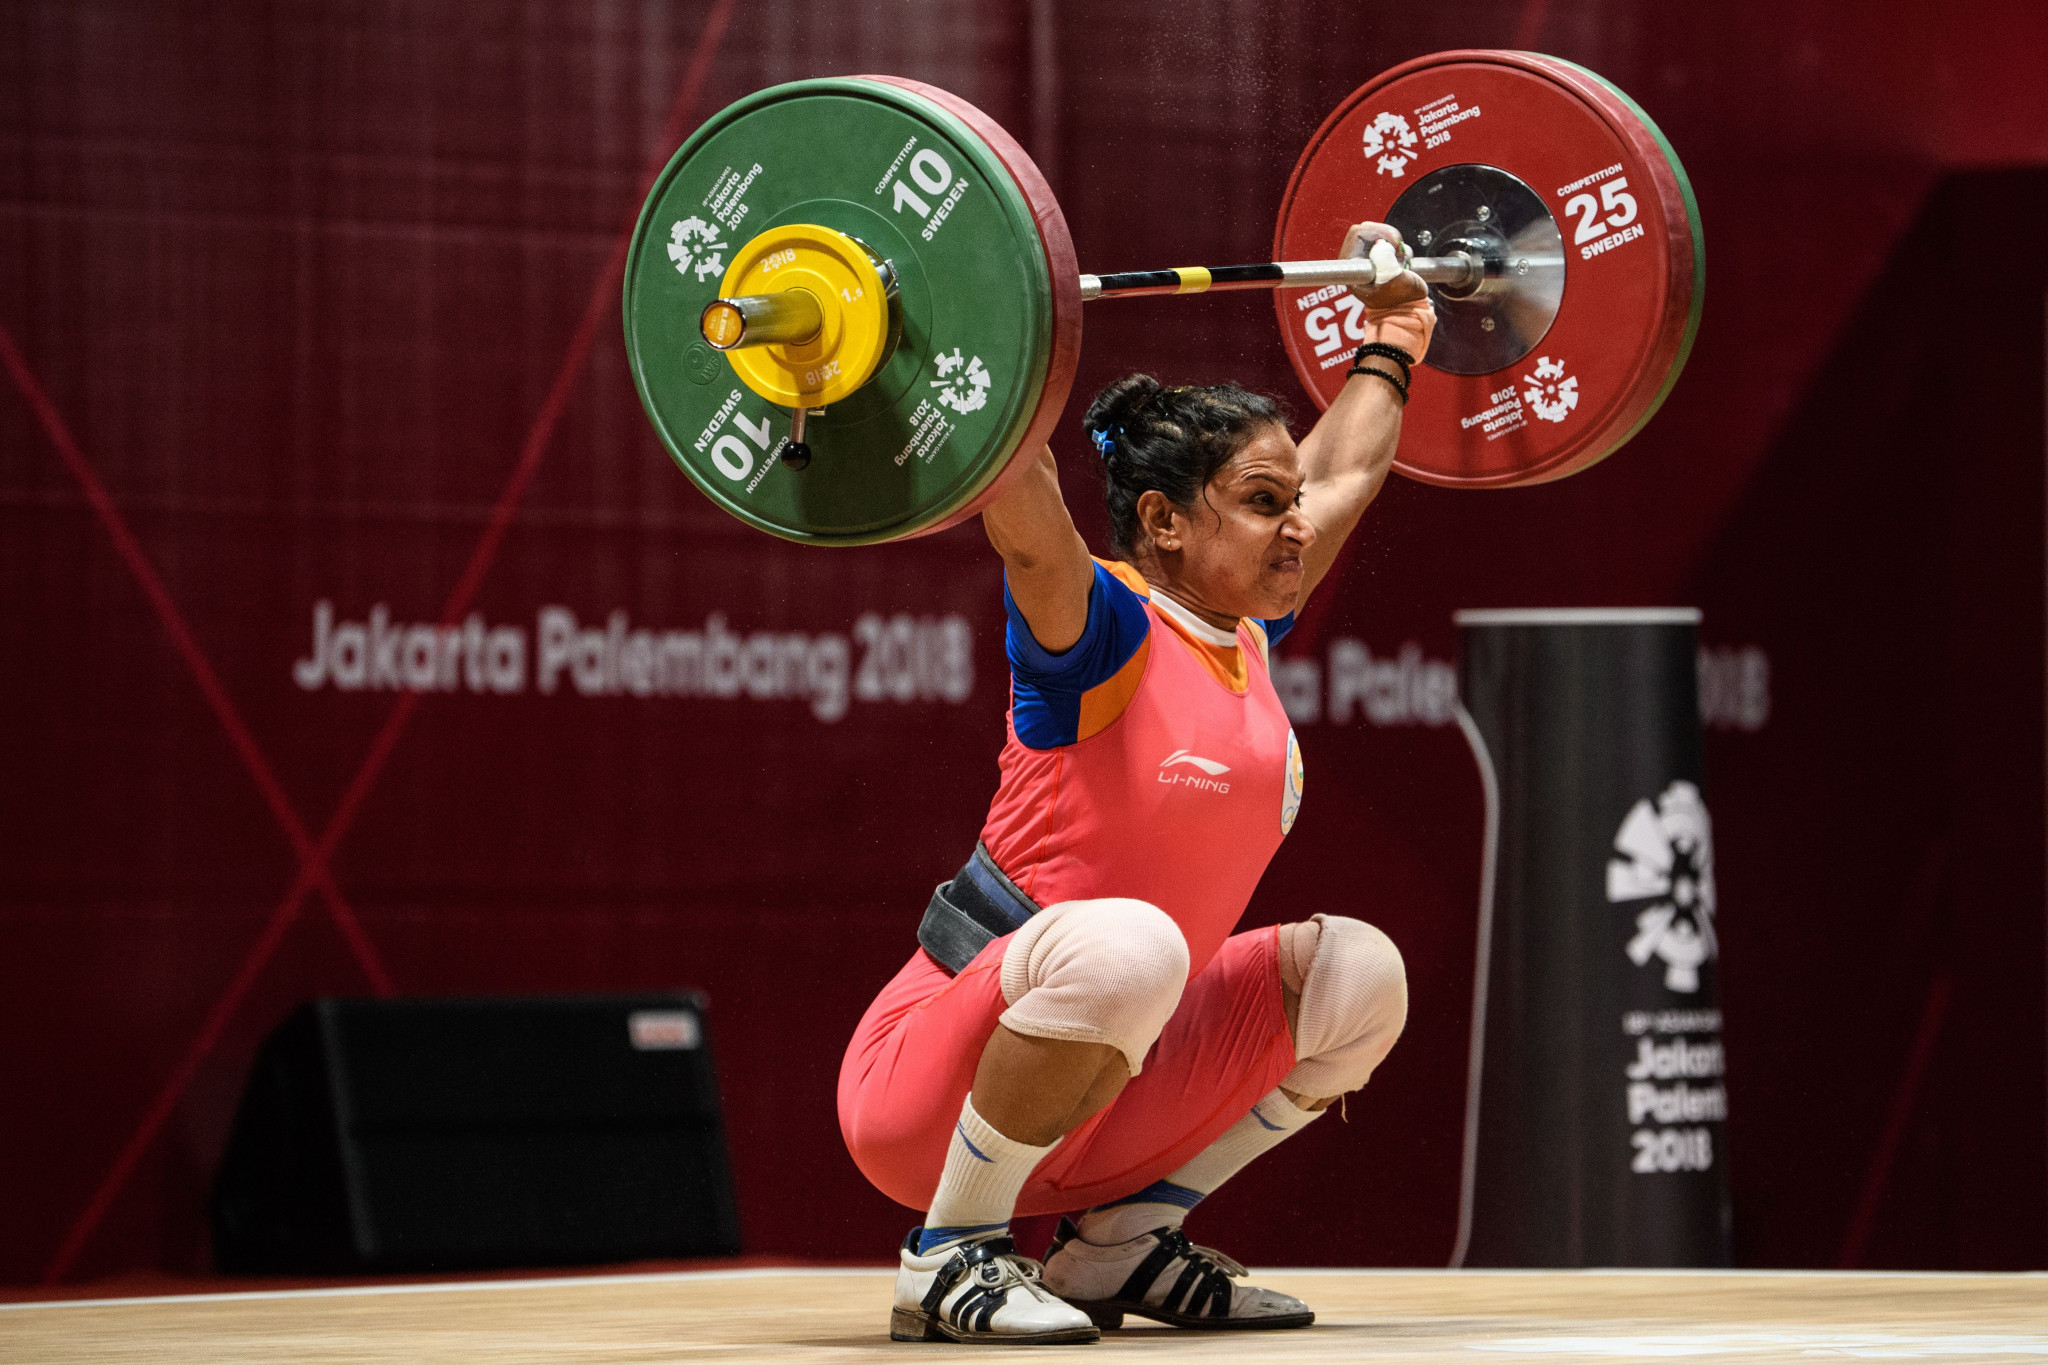 Indian weightlifters are boycotting products made in China ©Getty Images